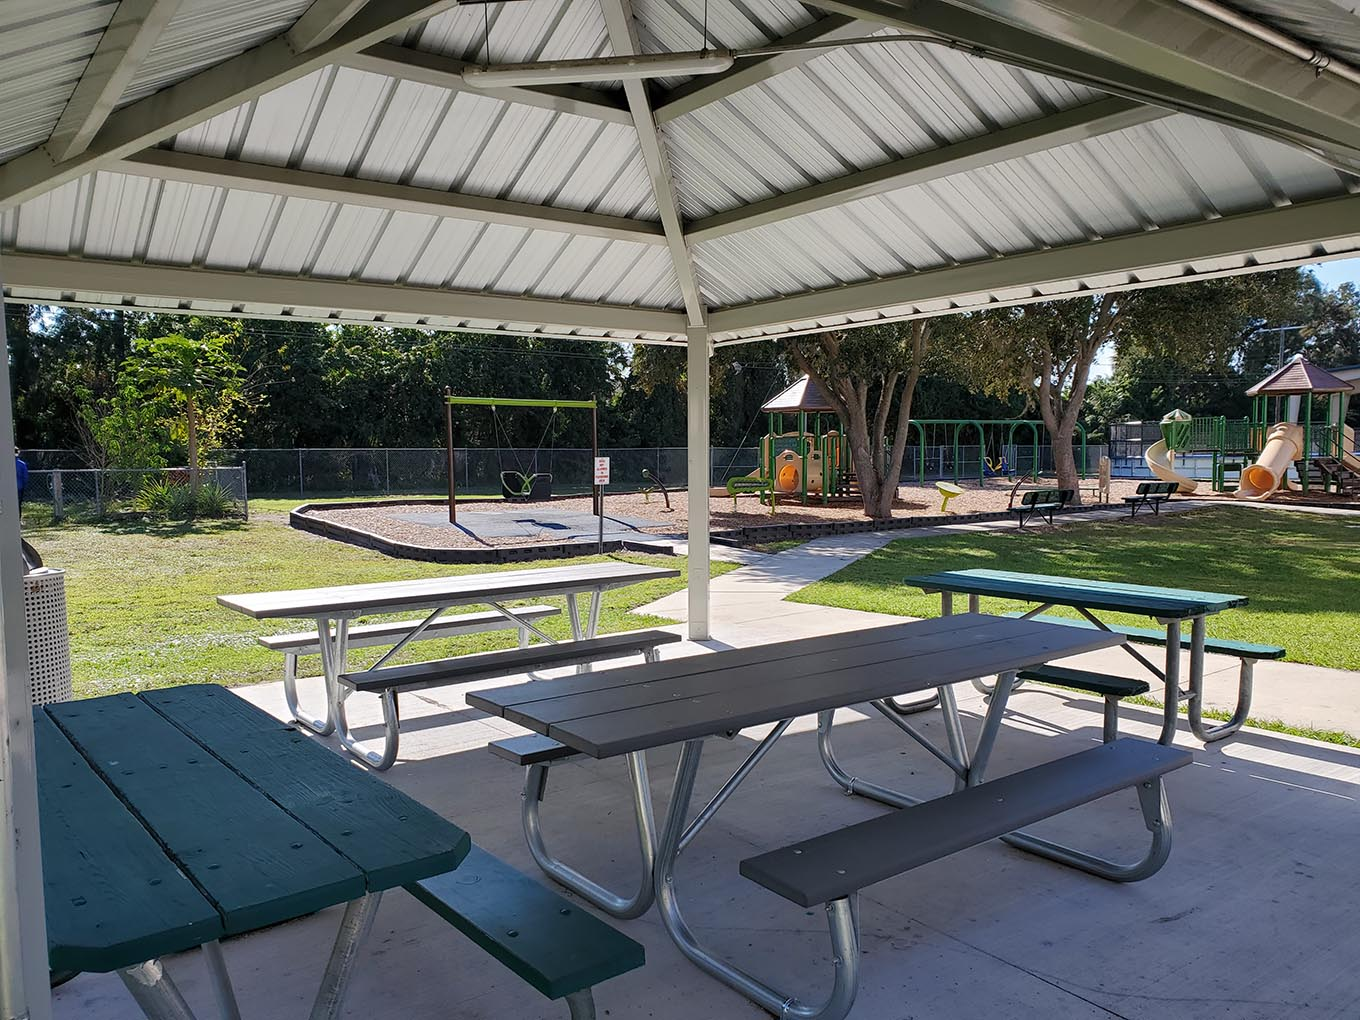 Covered picnic table shelter area, near the playground at Ruskin Rec Center